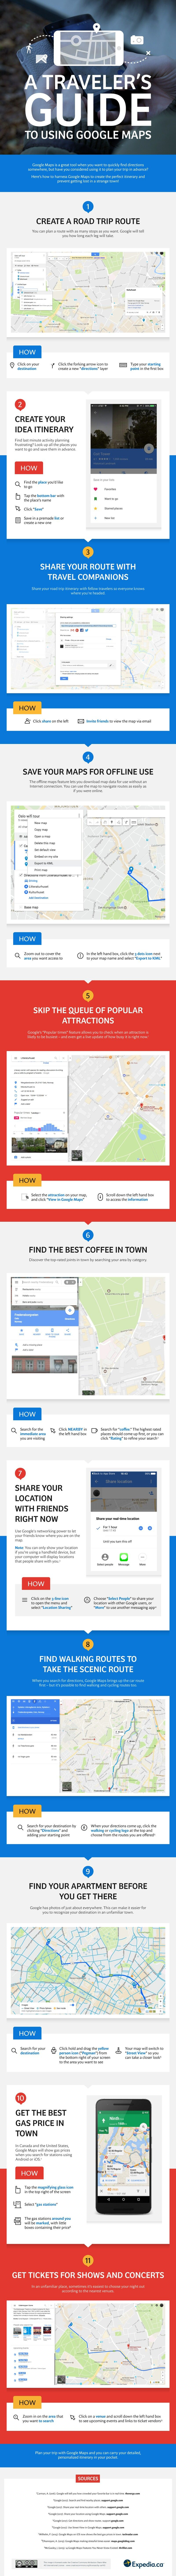 A Traveler S Guide To Google Maps With Images Travel